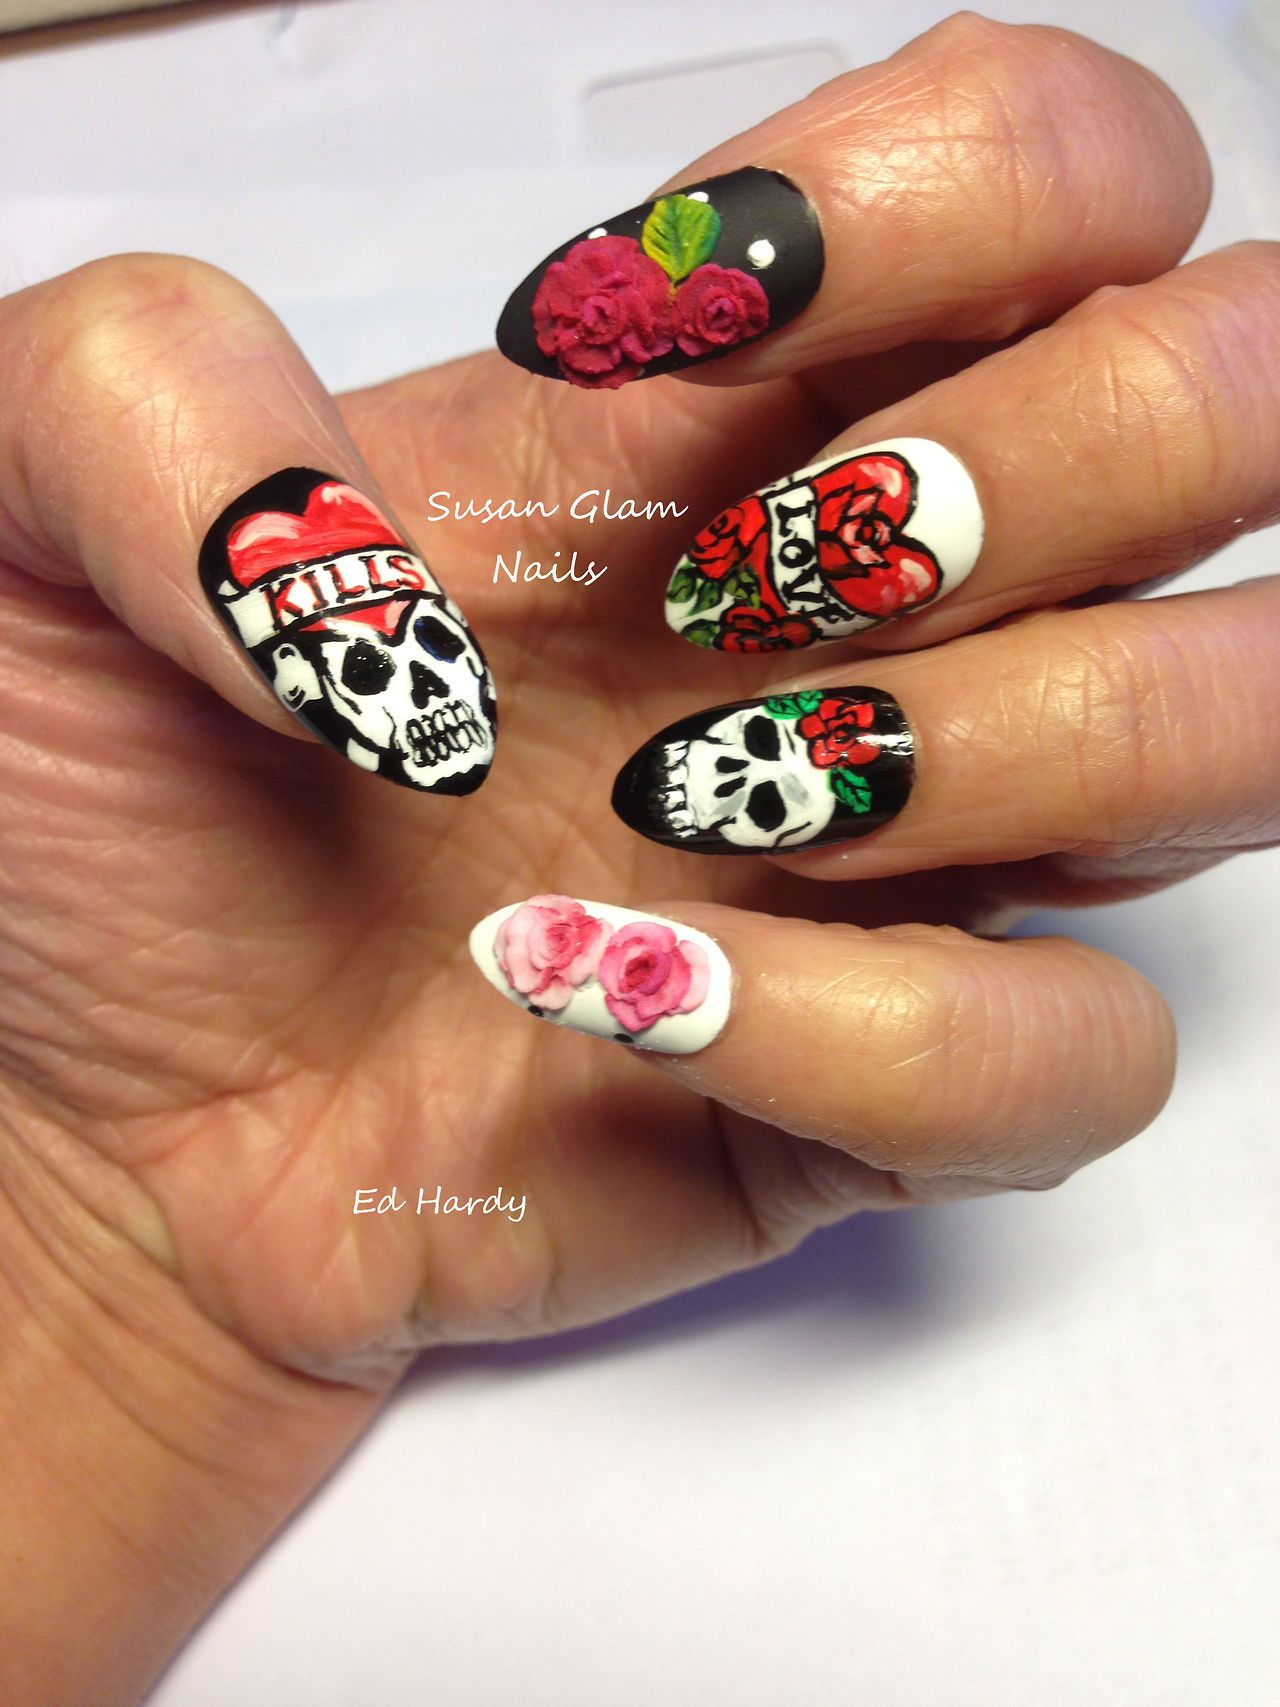 Ed Hardy inspired nails with embossed roses | Brookie | Pinterest ...